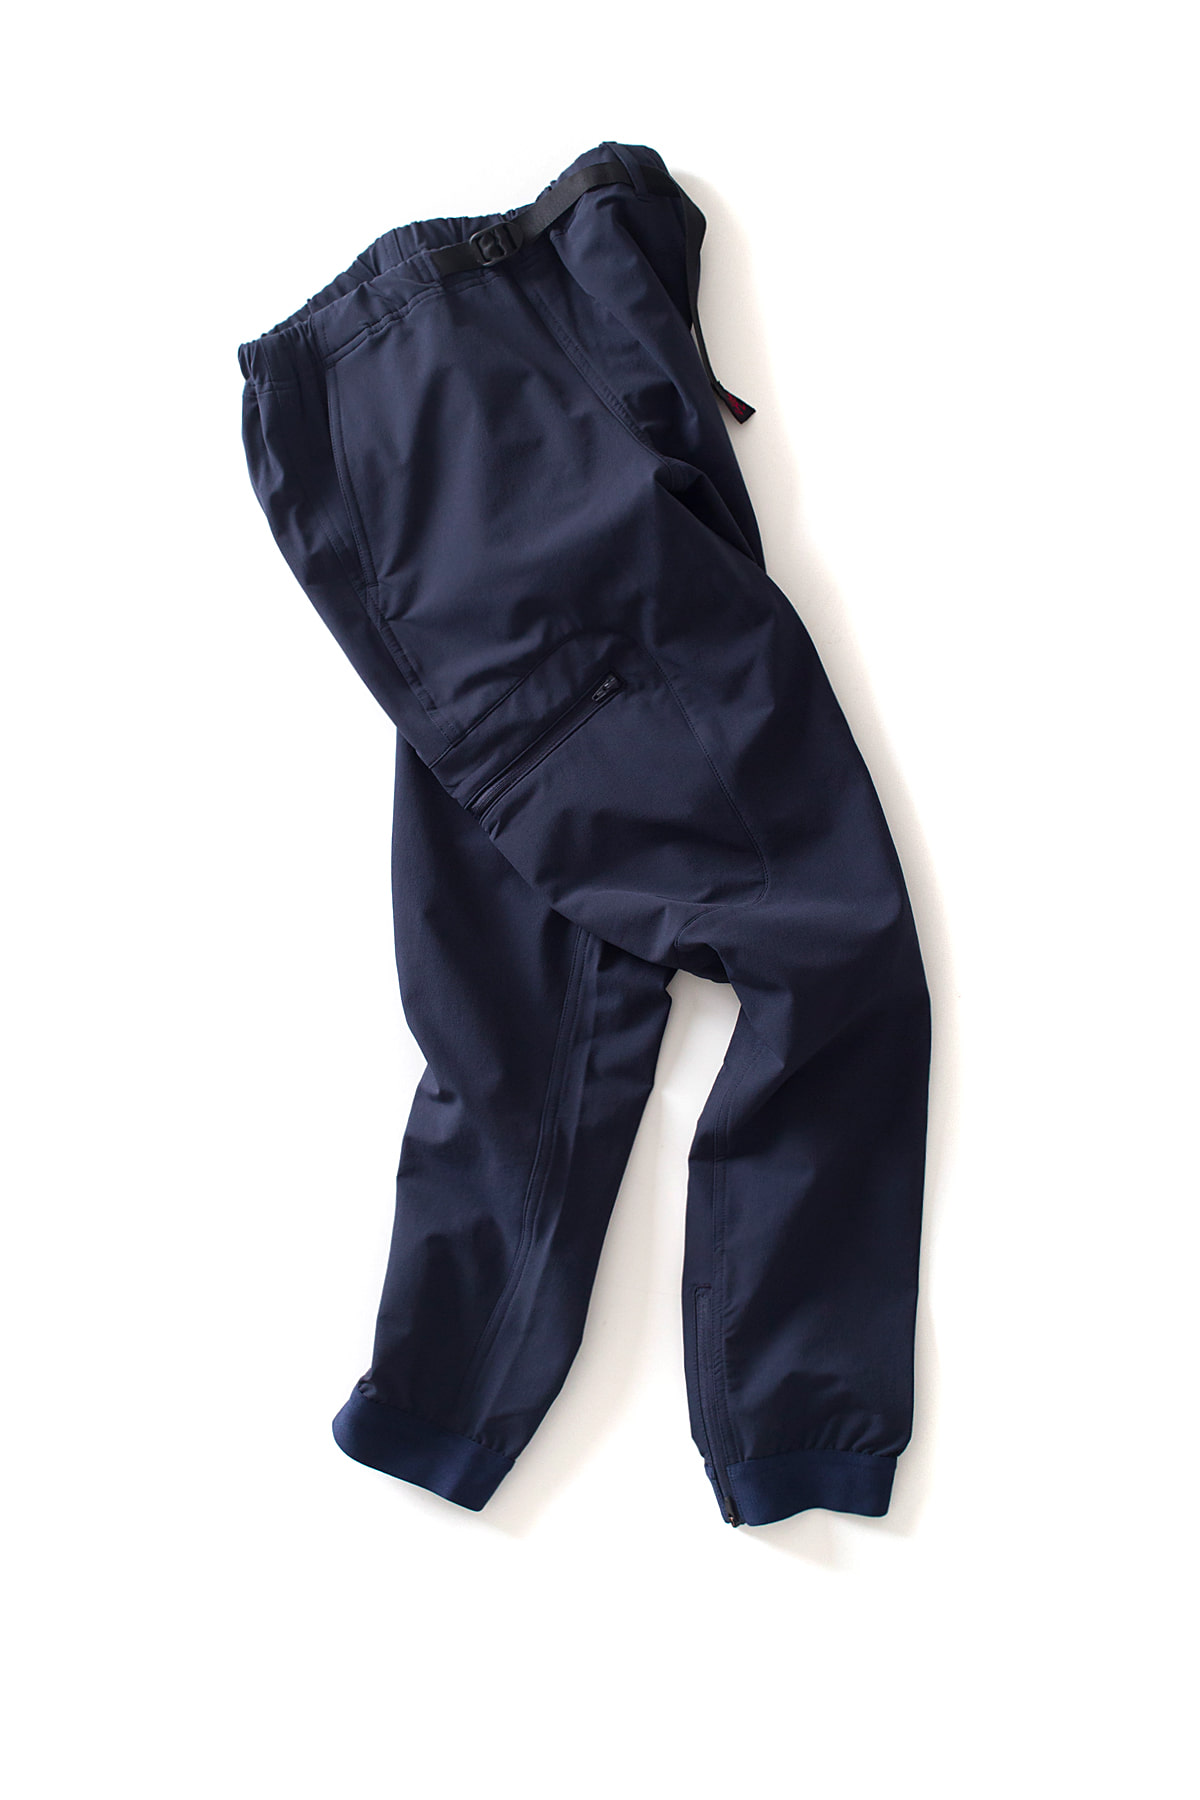 Gramicci : 4Way st Narrow Rib Gear Pants (Double Navy)